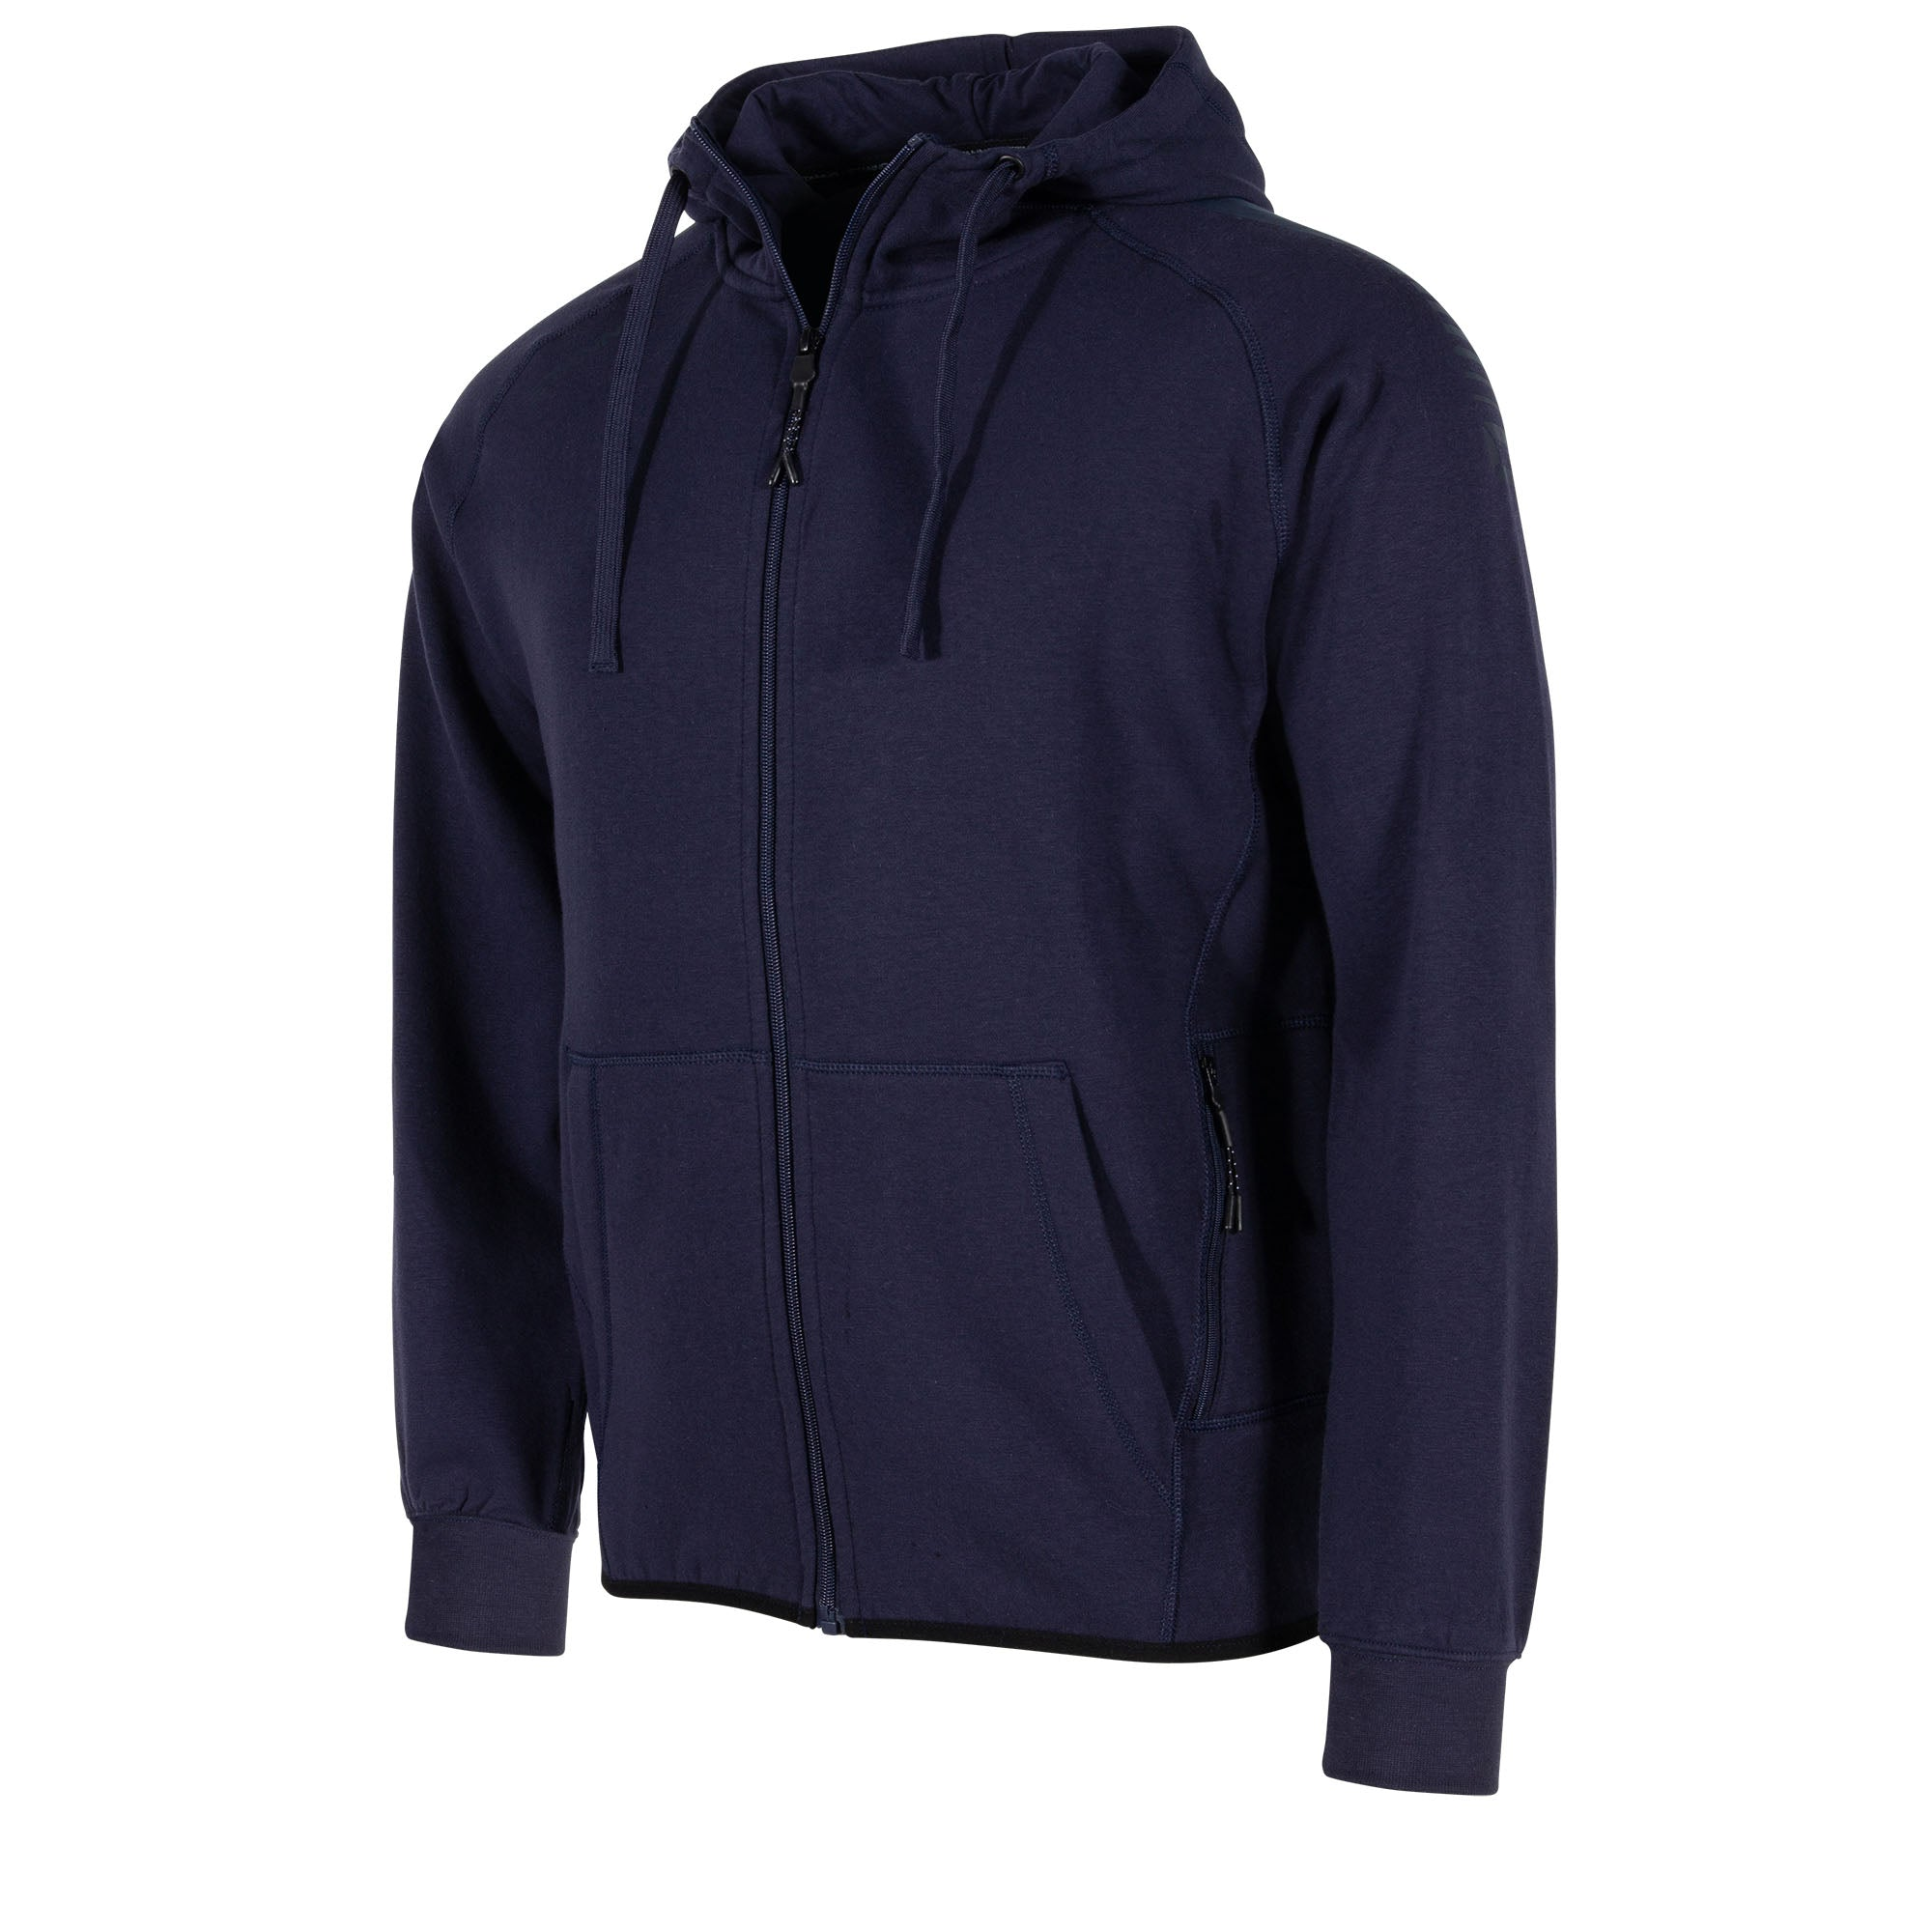 Front view of navy Stanno Ease Full Zip Hoodie. Front left zip pocket. Shoulder print.